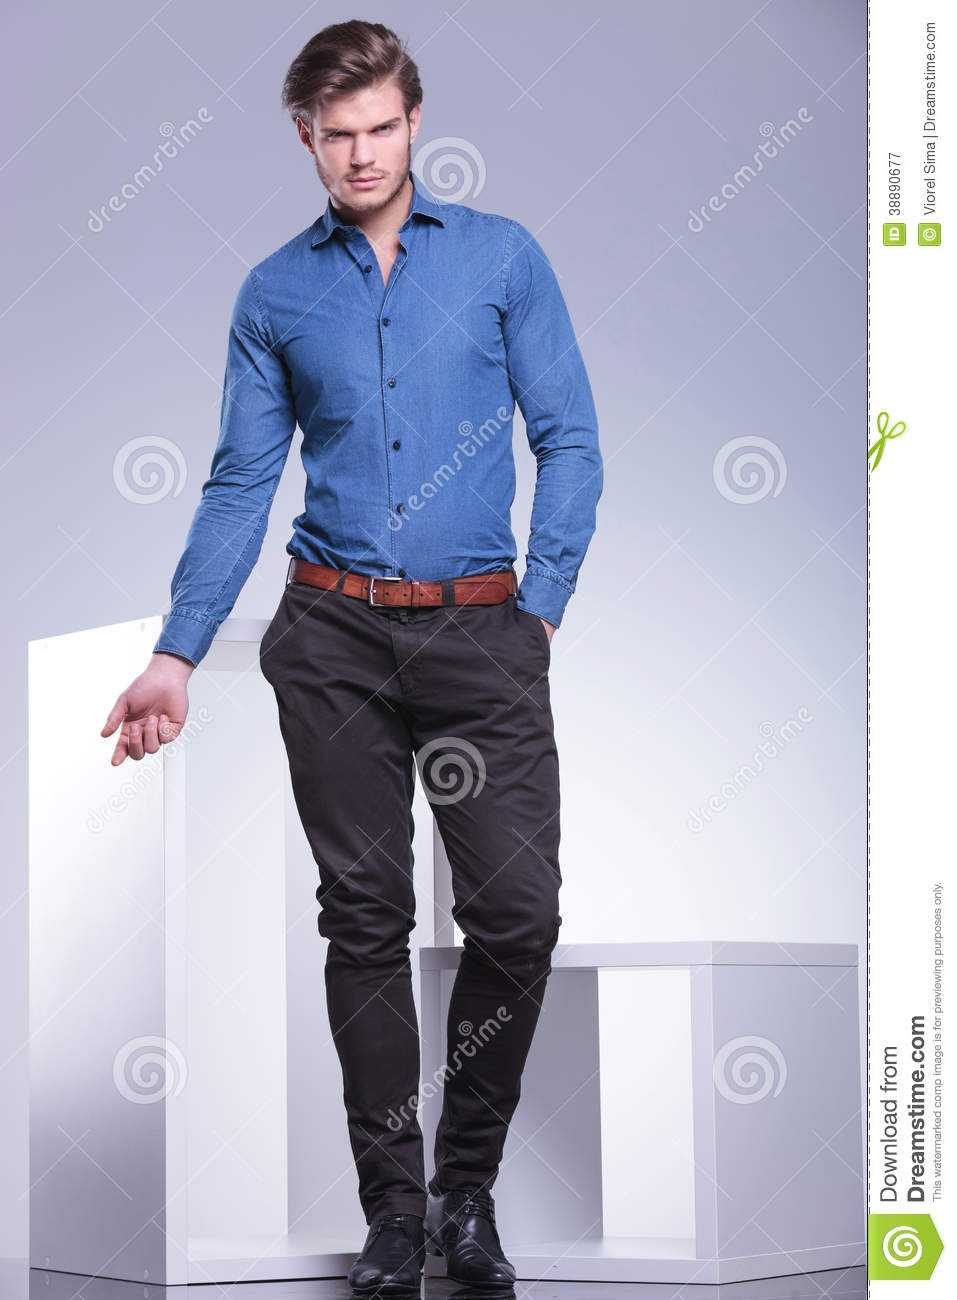 Smart Casual Dressed Man In A Fashion Pose Stock Photo